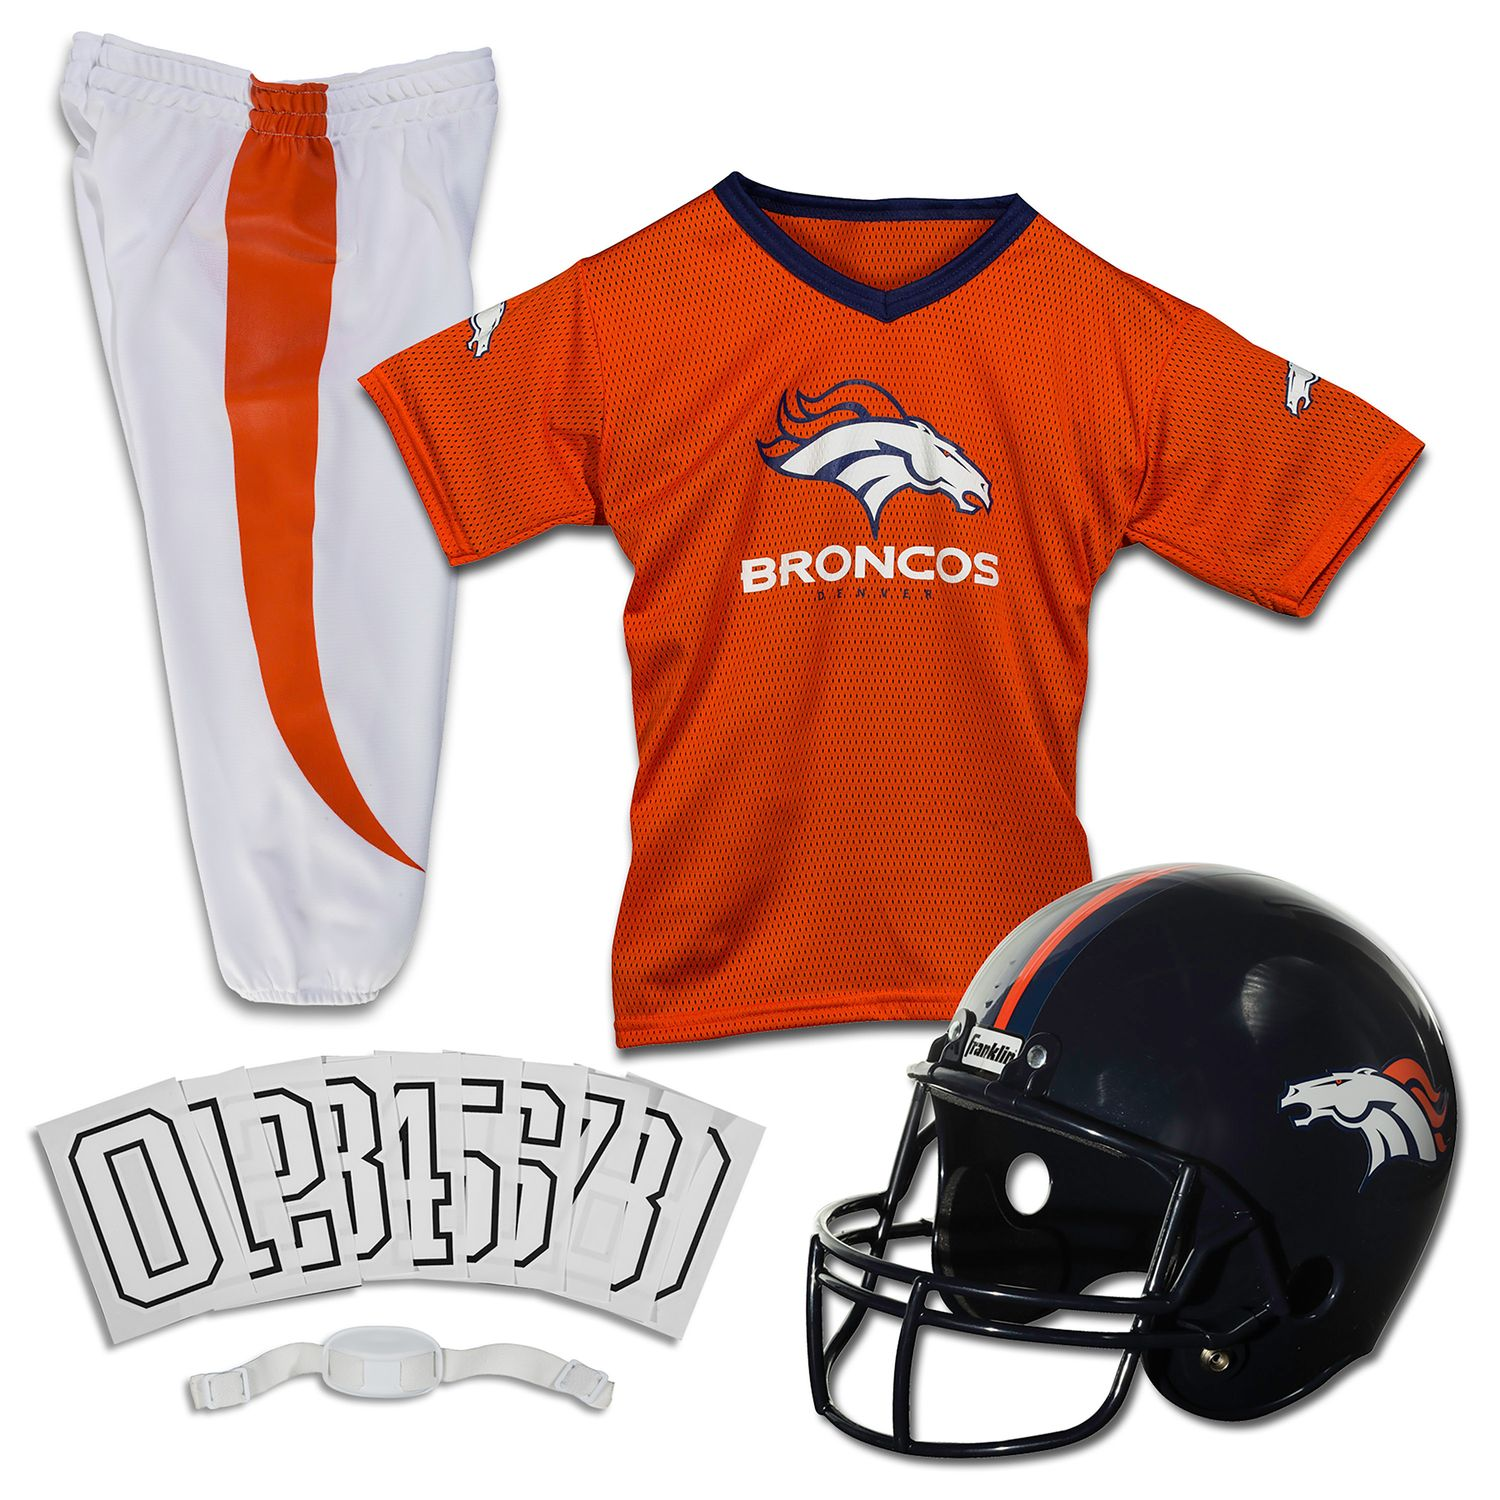 online store d2dae 0c0a3 Womens Broncos Shirts Kohls – EDGE Engineering and ...